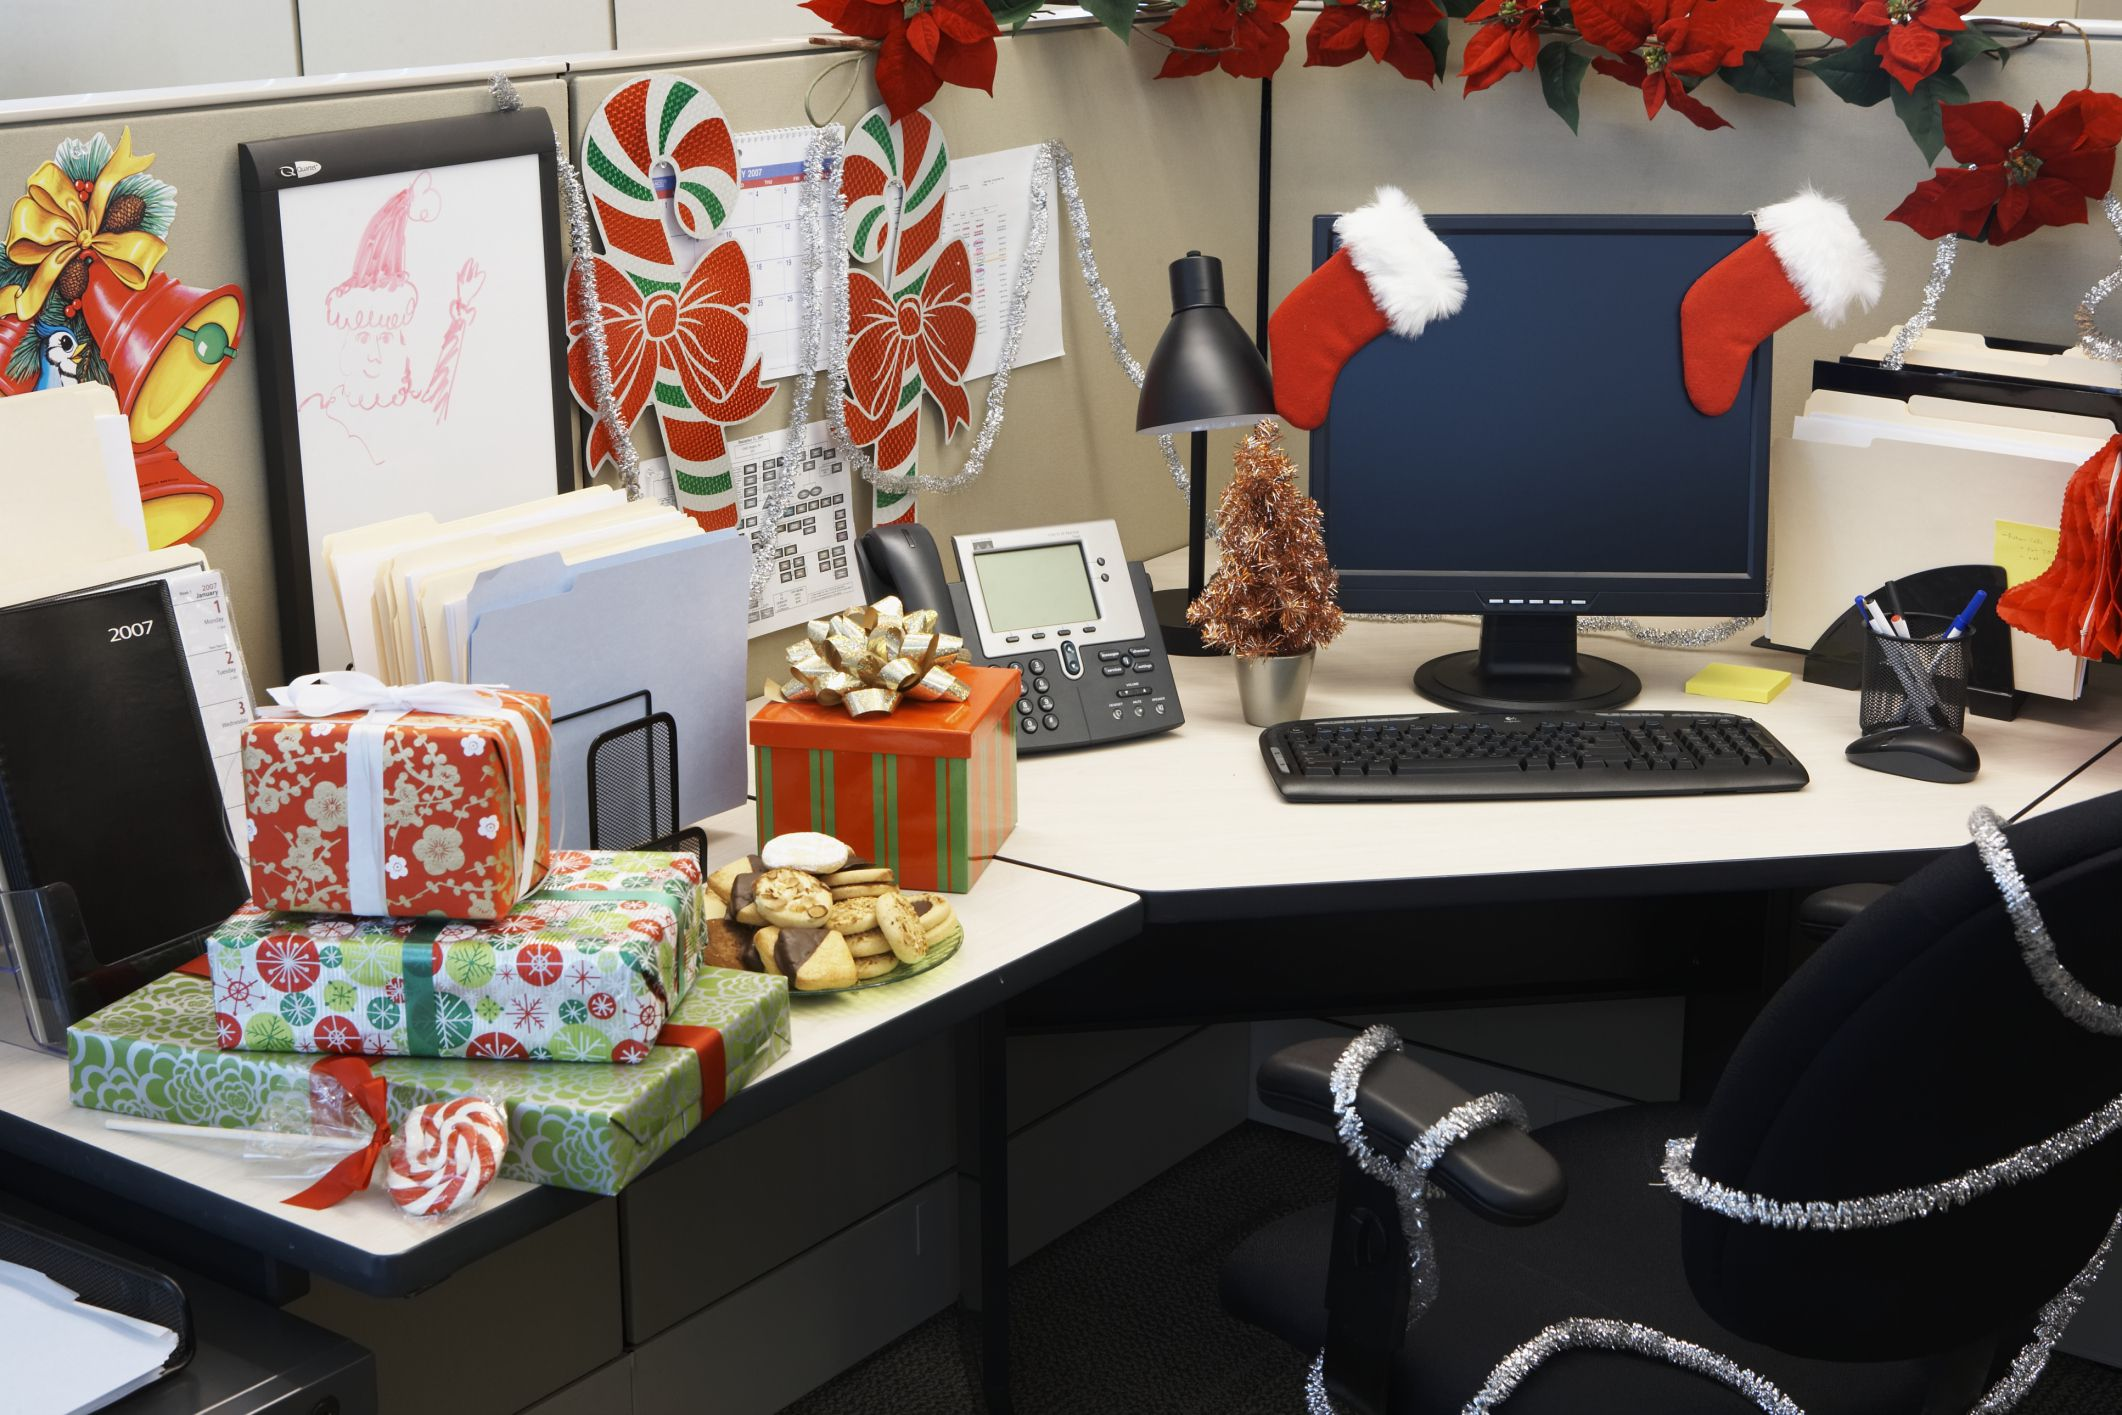 how to deduct employee gifts awards and bonuses